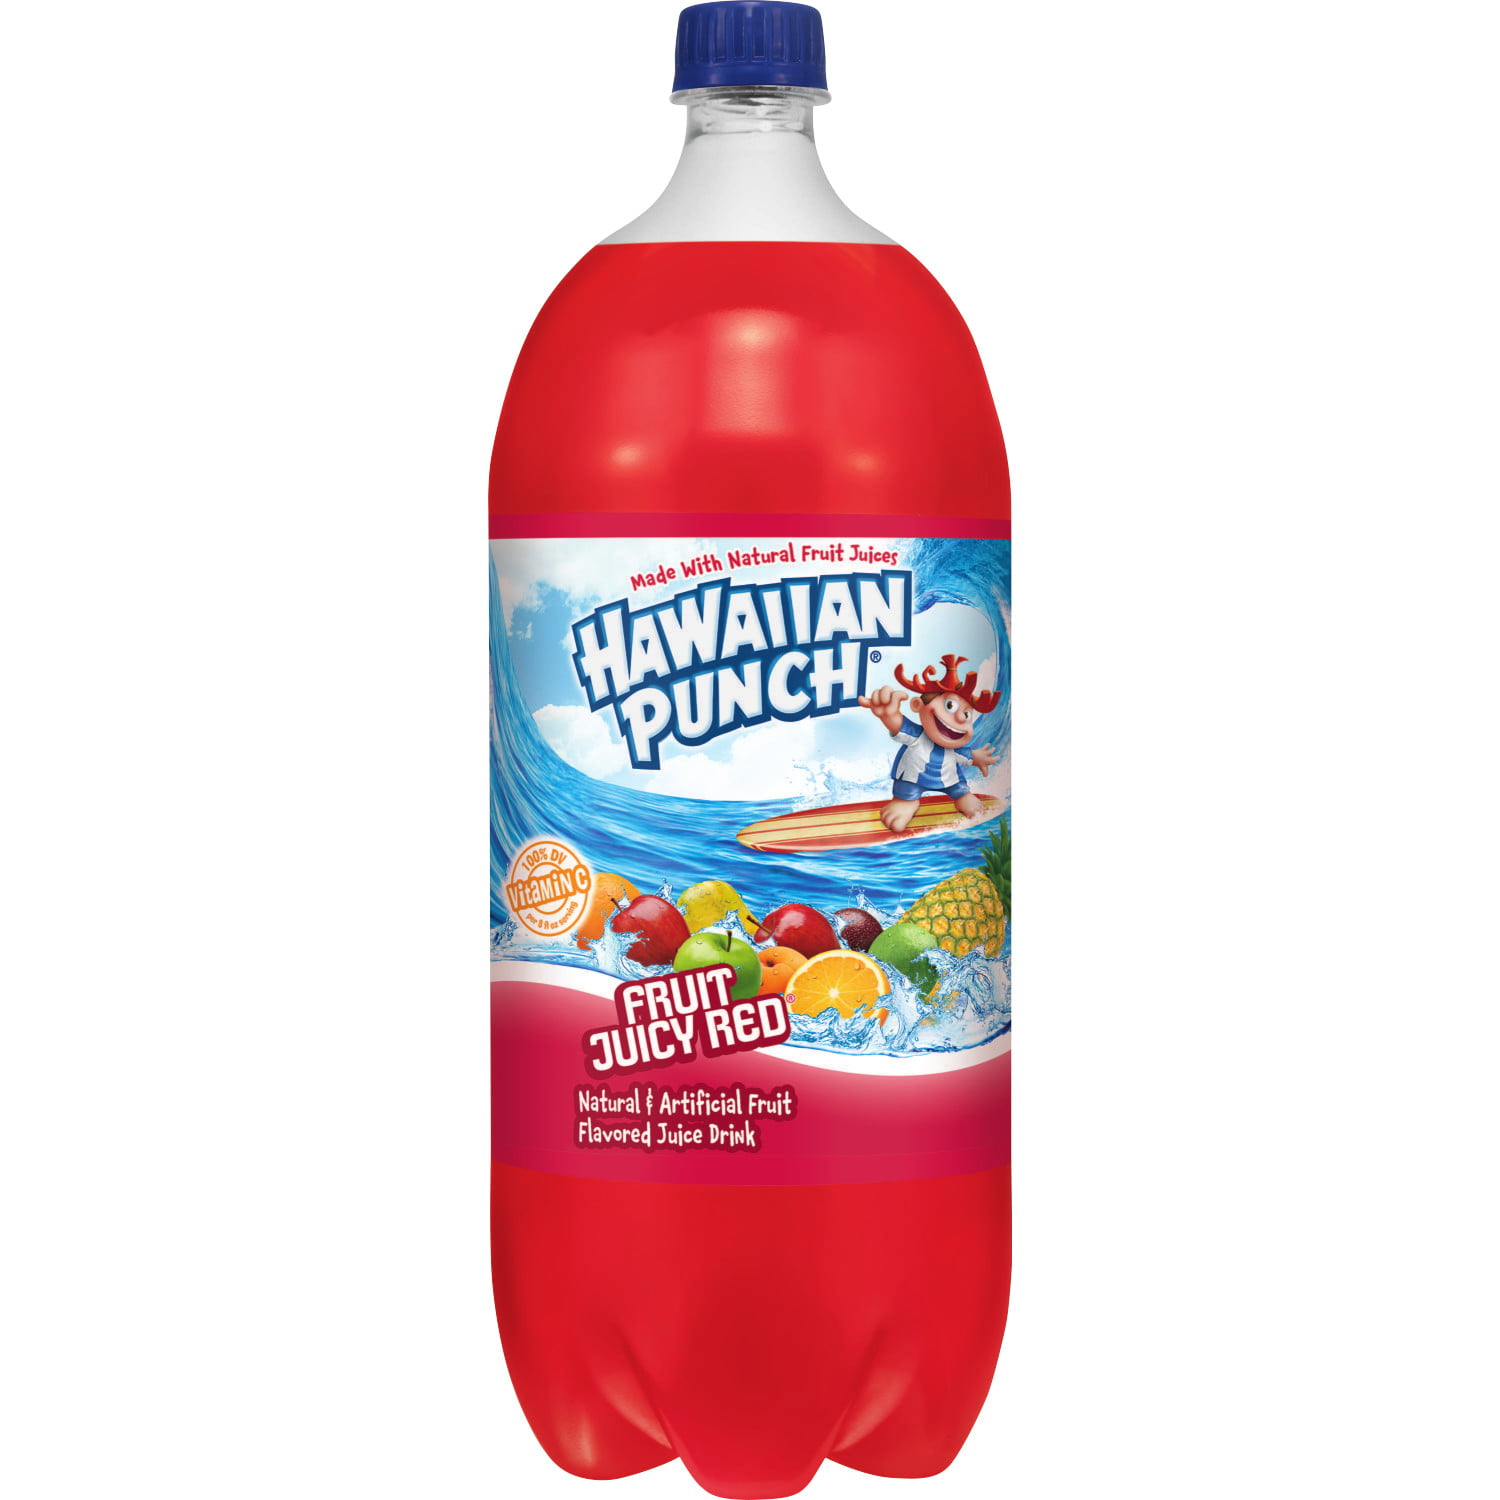 hawaiian punch essay How will two distinct manufacturing, sales, and distribution networks to stock and sever an identical beverage for the same customers fare 3 determining the roles each will play in sales, profitability, and equity of the hawaiian punch brand.